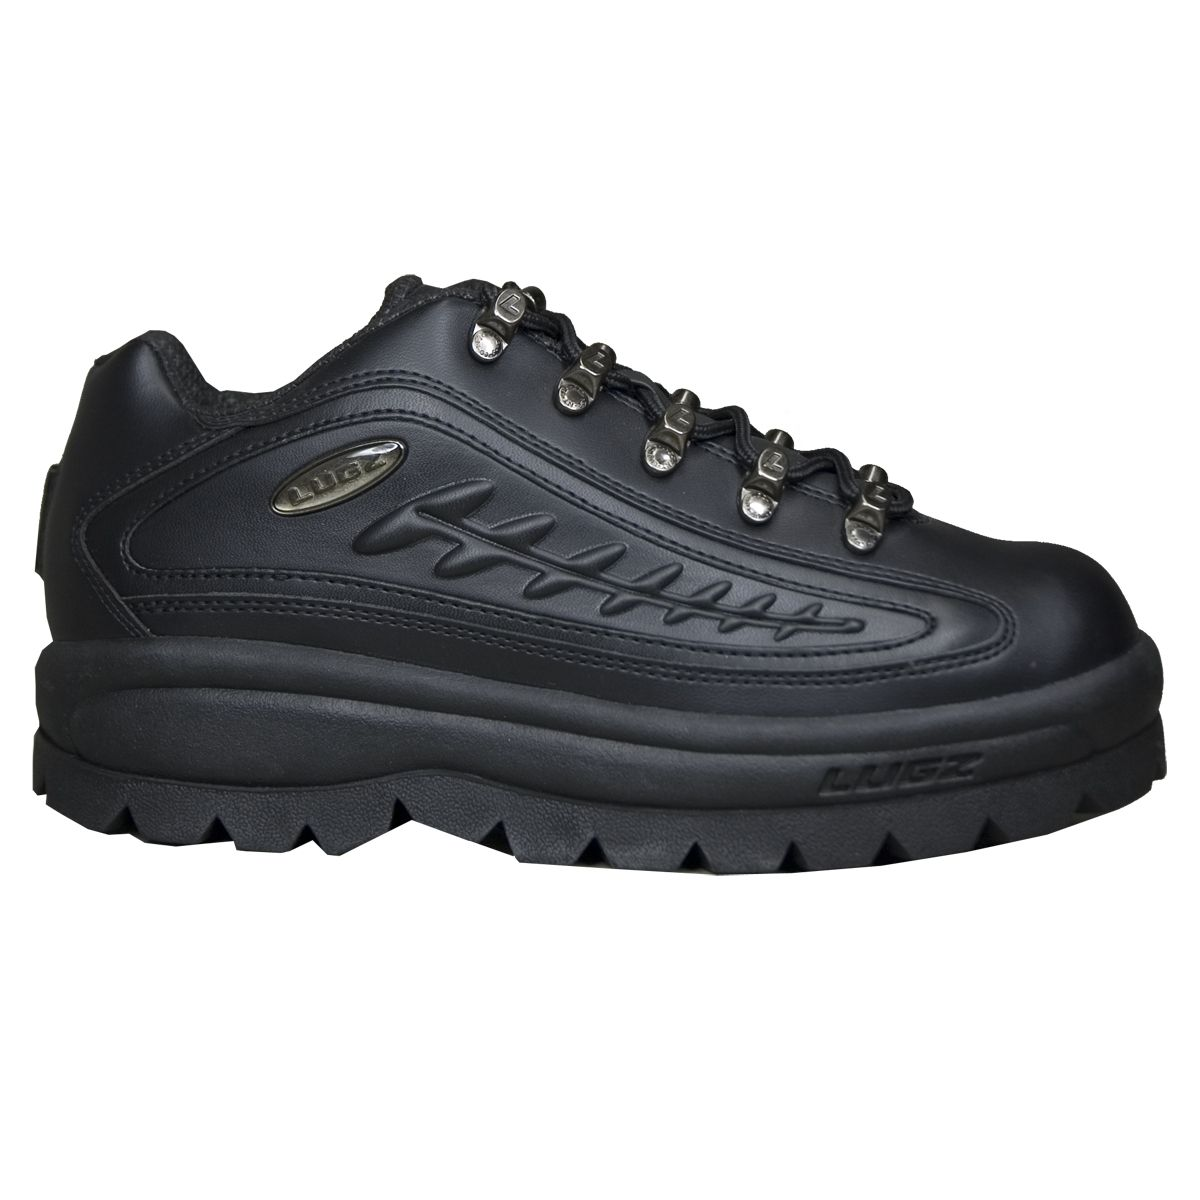 lugz | lugz dot com mens boot black lugz dot com mens boot black product  lugz